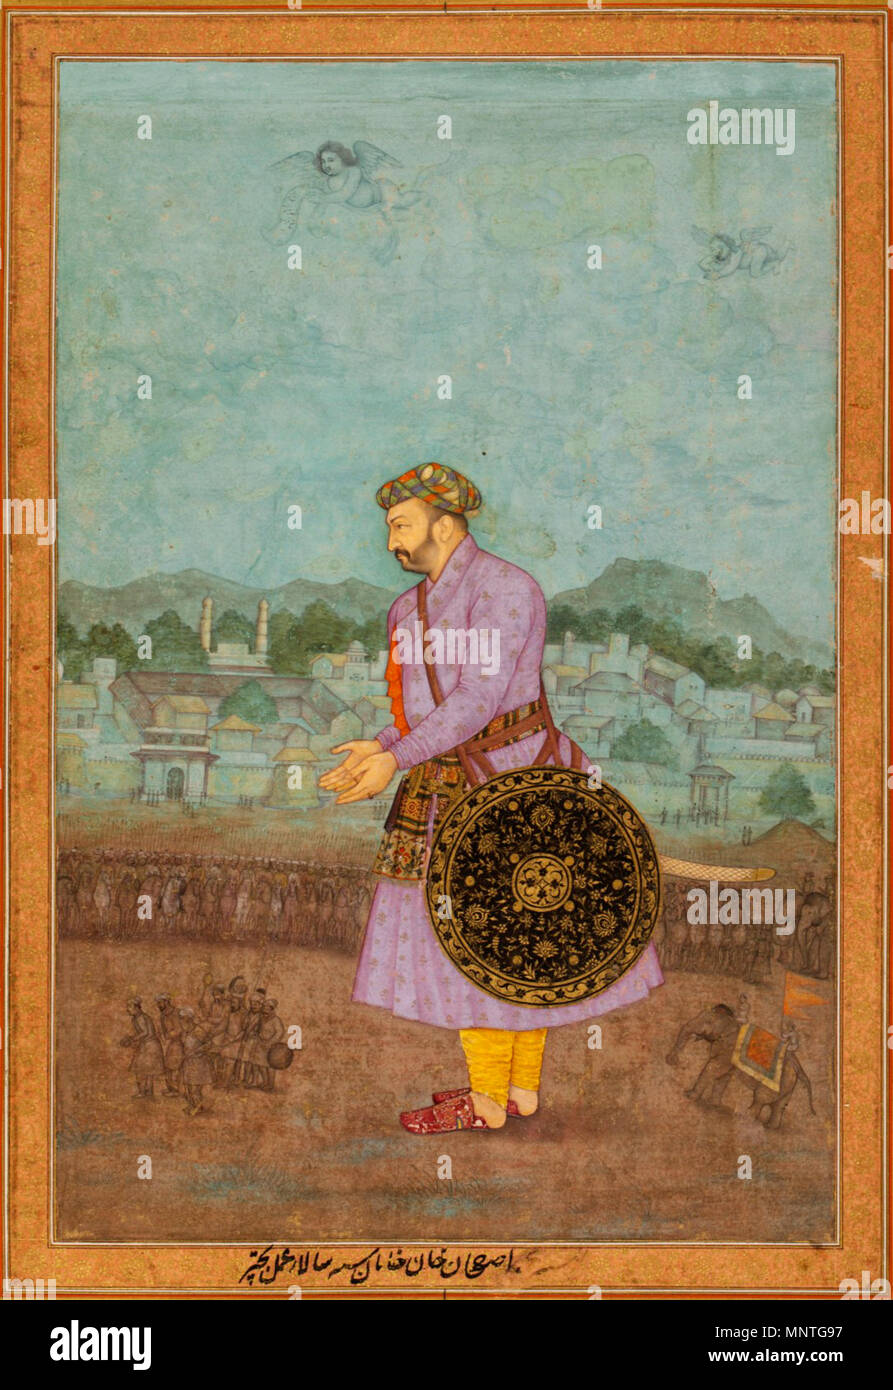 . English: Portrait of Asaf Khan Object Name:  Album leaf Date:  19th century Geography:  India Culture:  Islamic Dimensions:  14 1/4 x 9 3/4in. (36.2 x 24.8cm) Classification:  Codices Credit Line:  Gift of Alexander Smith Cochran, 1913 Accession Number:  13.228.52 This artwork is not on display . 19th century. Unknown 1018 Portrait of Asaf Khan - Stock Image